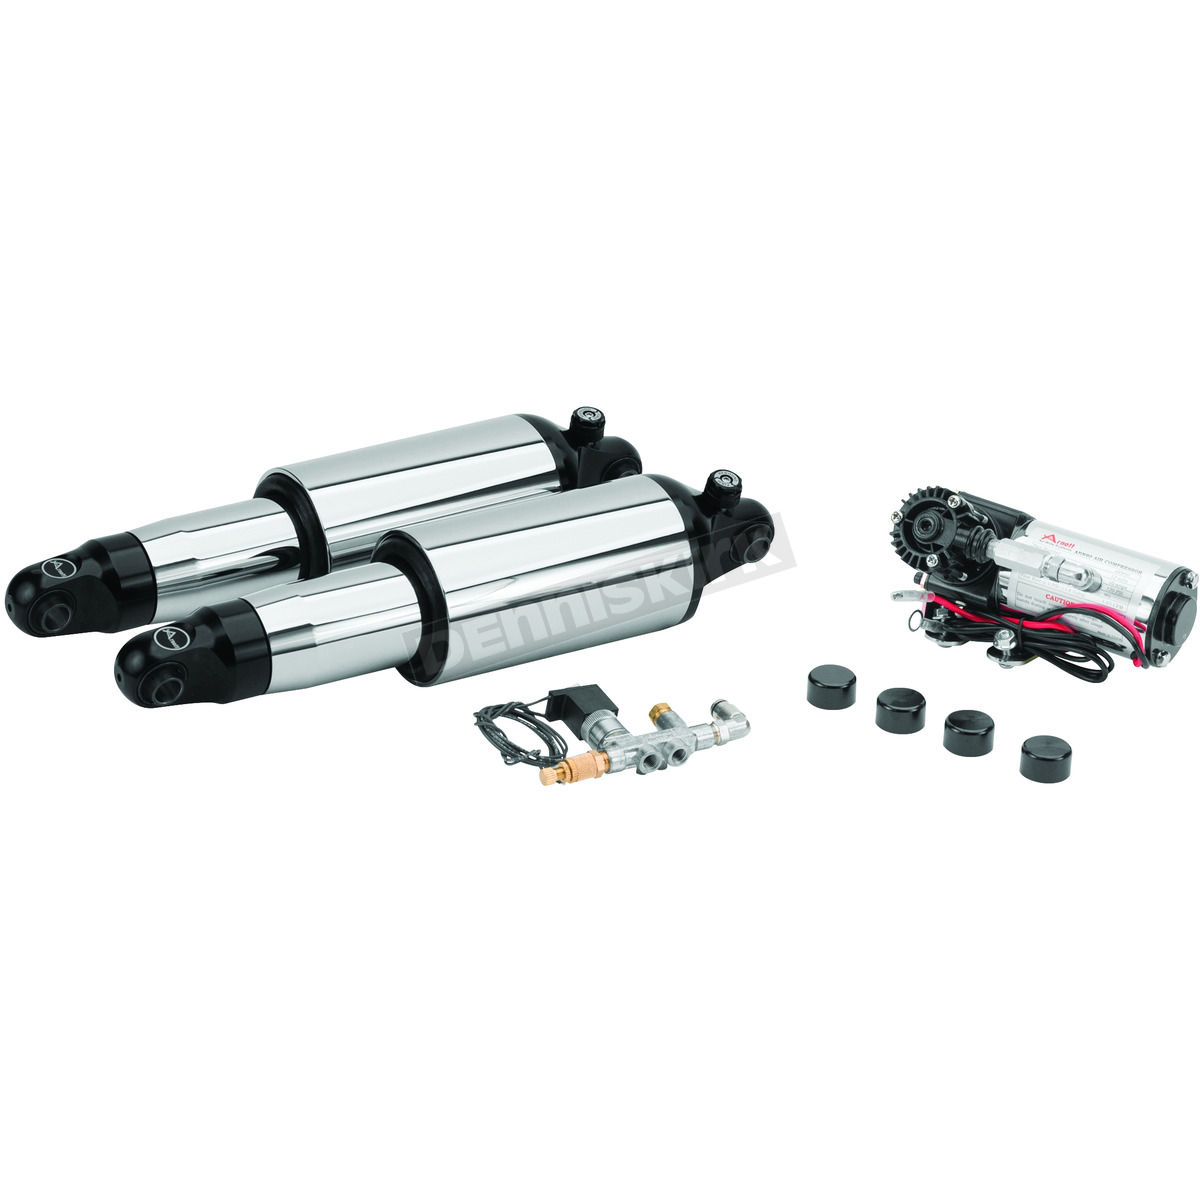 Ultimate Ride Adjustable Air Suspension Shock Absorbers w/Adjustable  Rebound - MC-2915